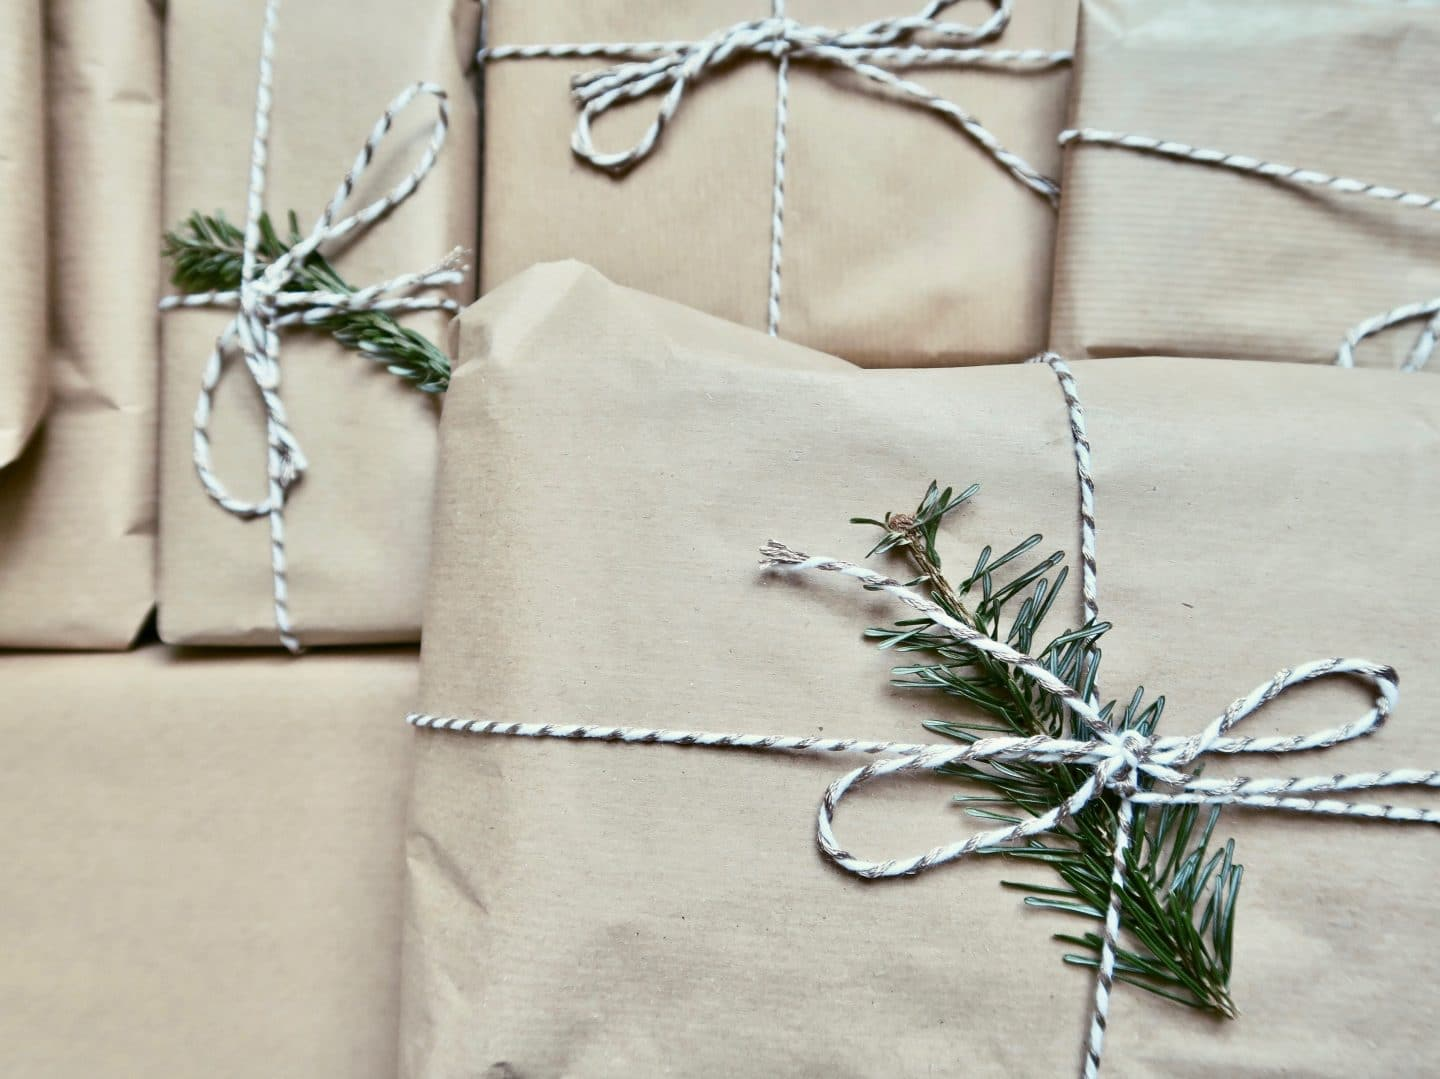 12 Days of Giftmas Giveaway | Curiously Conscious